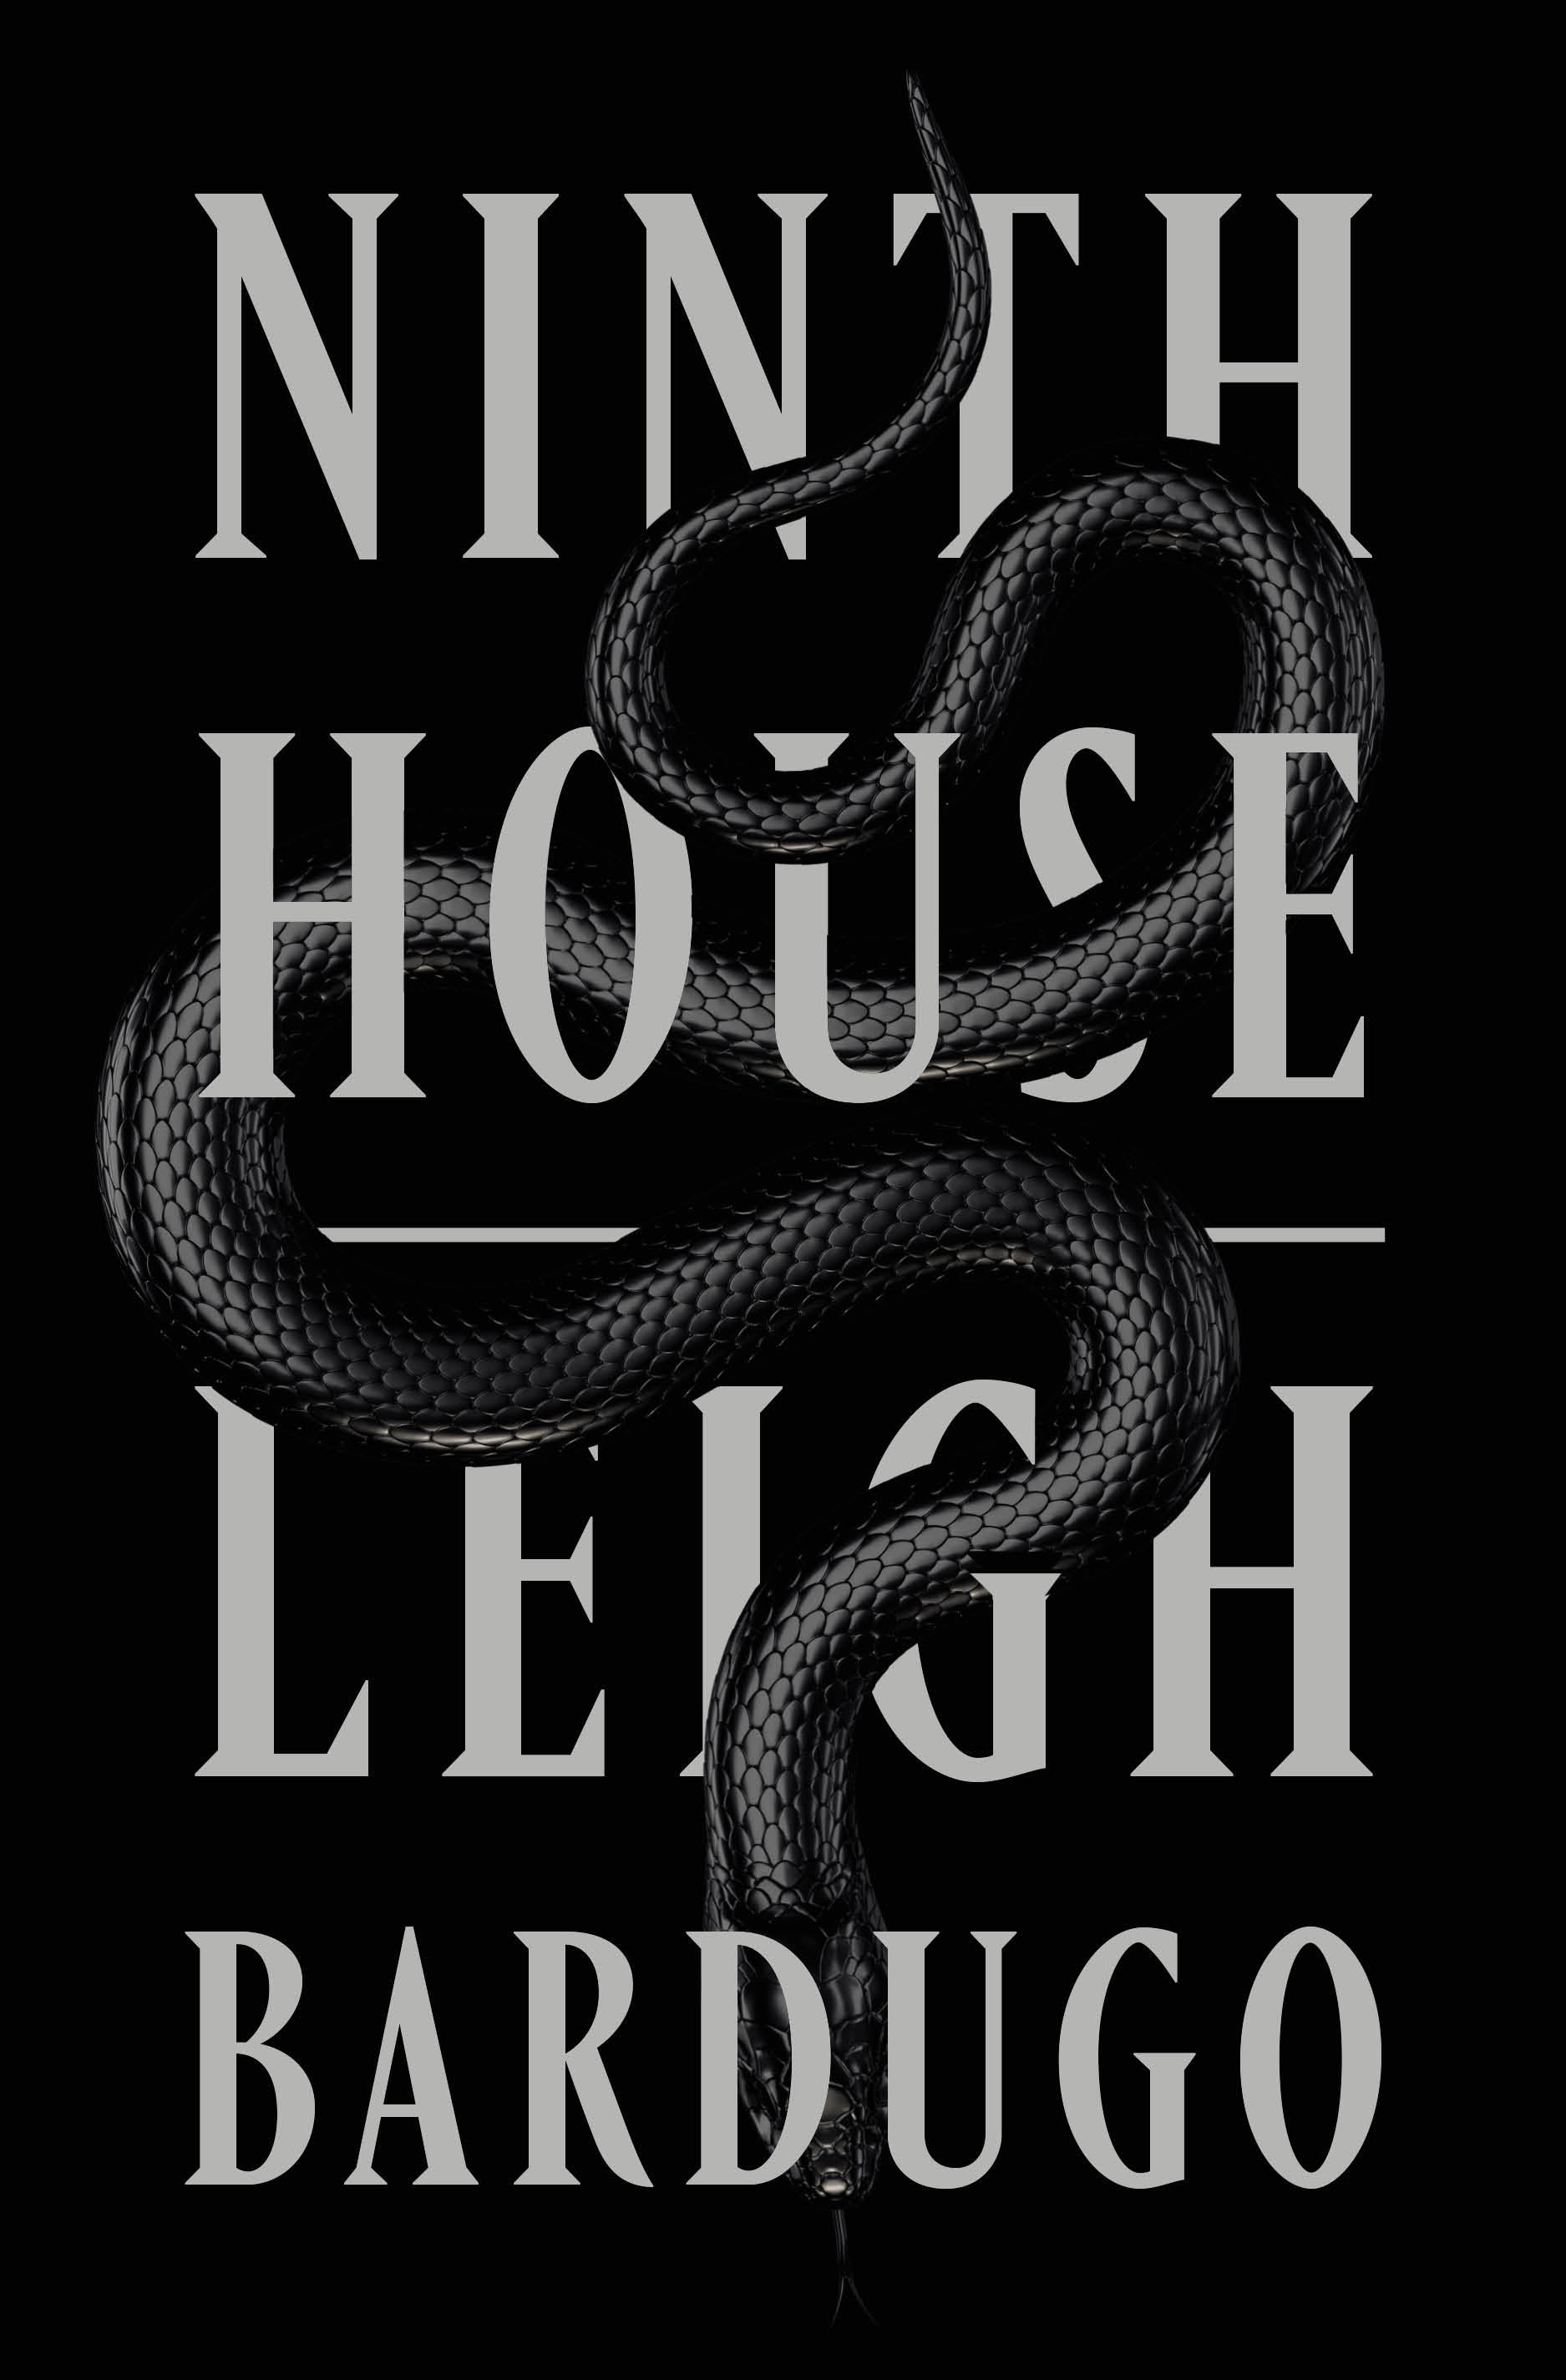 Leigh Bardugo turns Yale into a haunted, haunting fantasy world in Ninth House